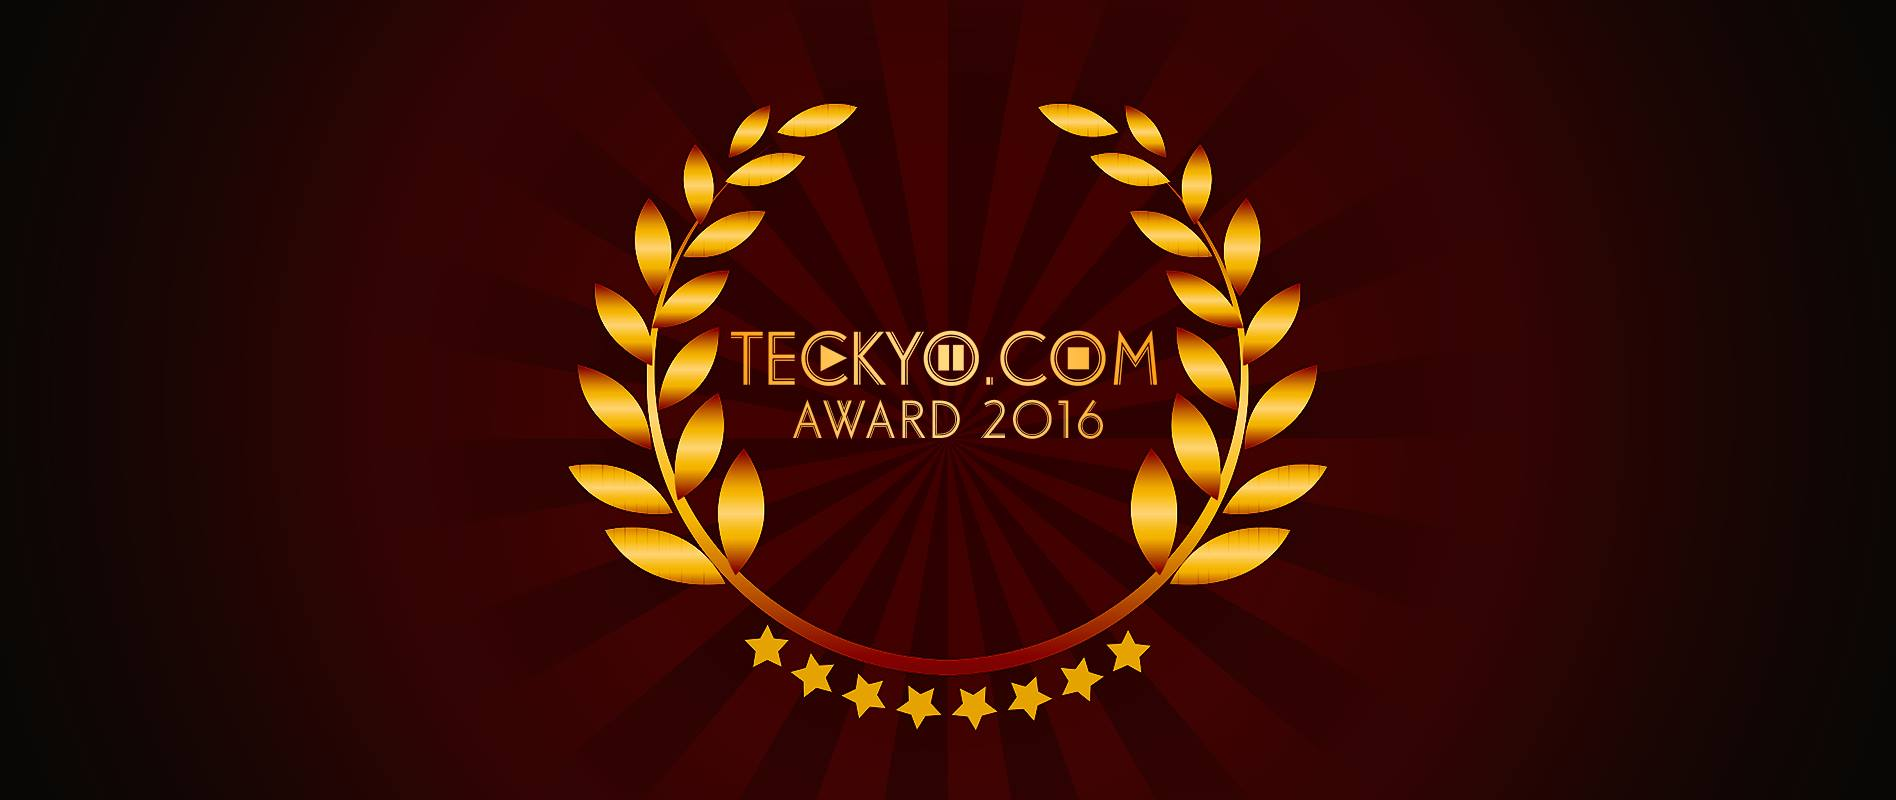 Teckyo Awards 2016